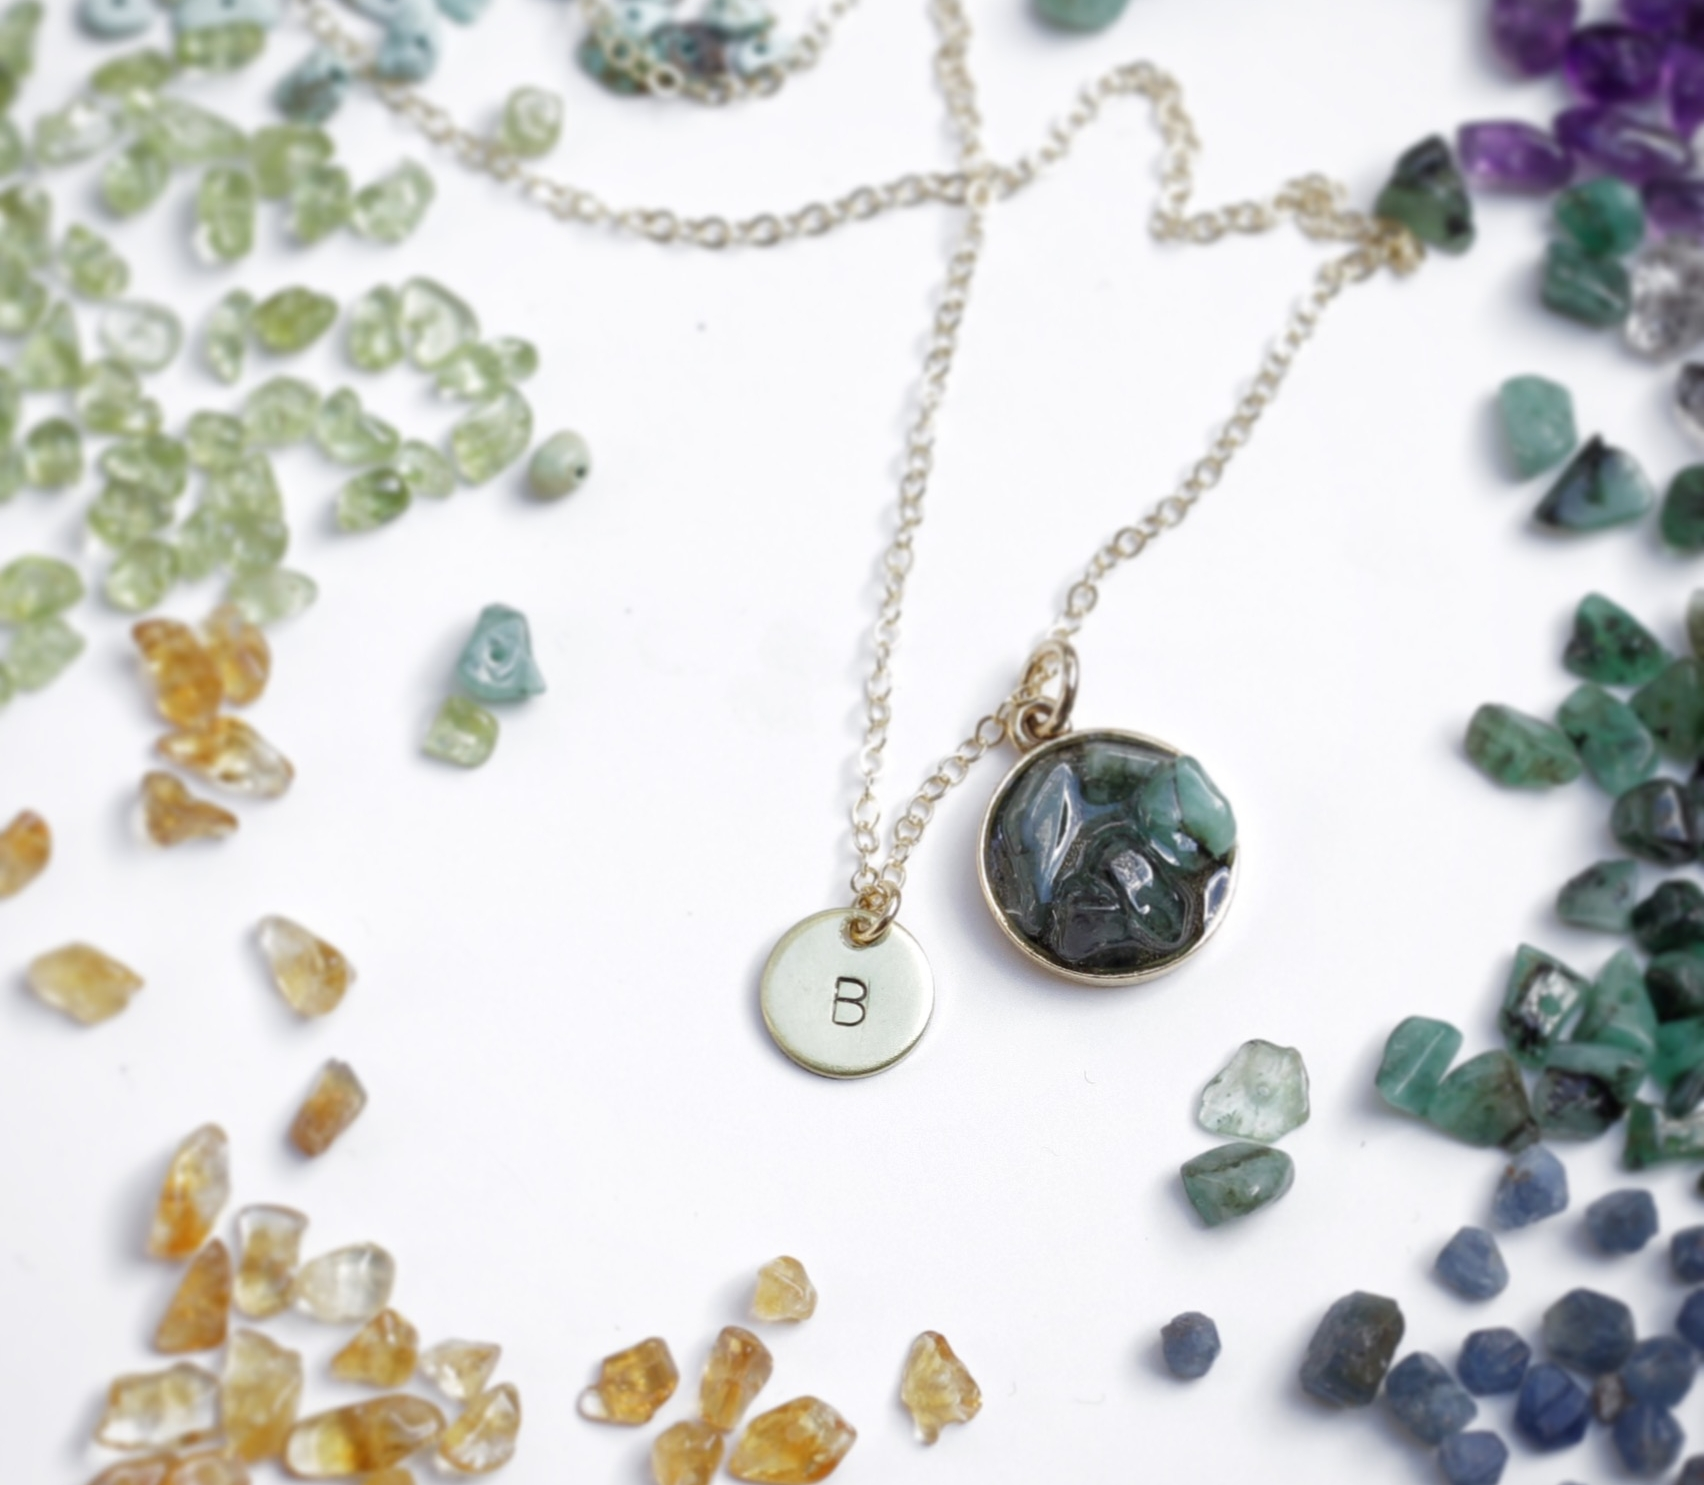 A custom natural emerald  cluster birthstone necklace , set in resin and surrounded by natural gemstones, including sapphire, amethyst, peridot, turquoise and citrine. Natural gemstones are the focus of Bang-Up Betty's new collection of handmade birthstone jewelry.